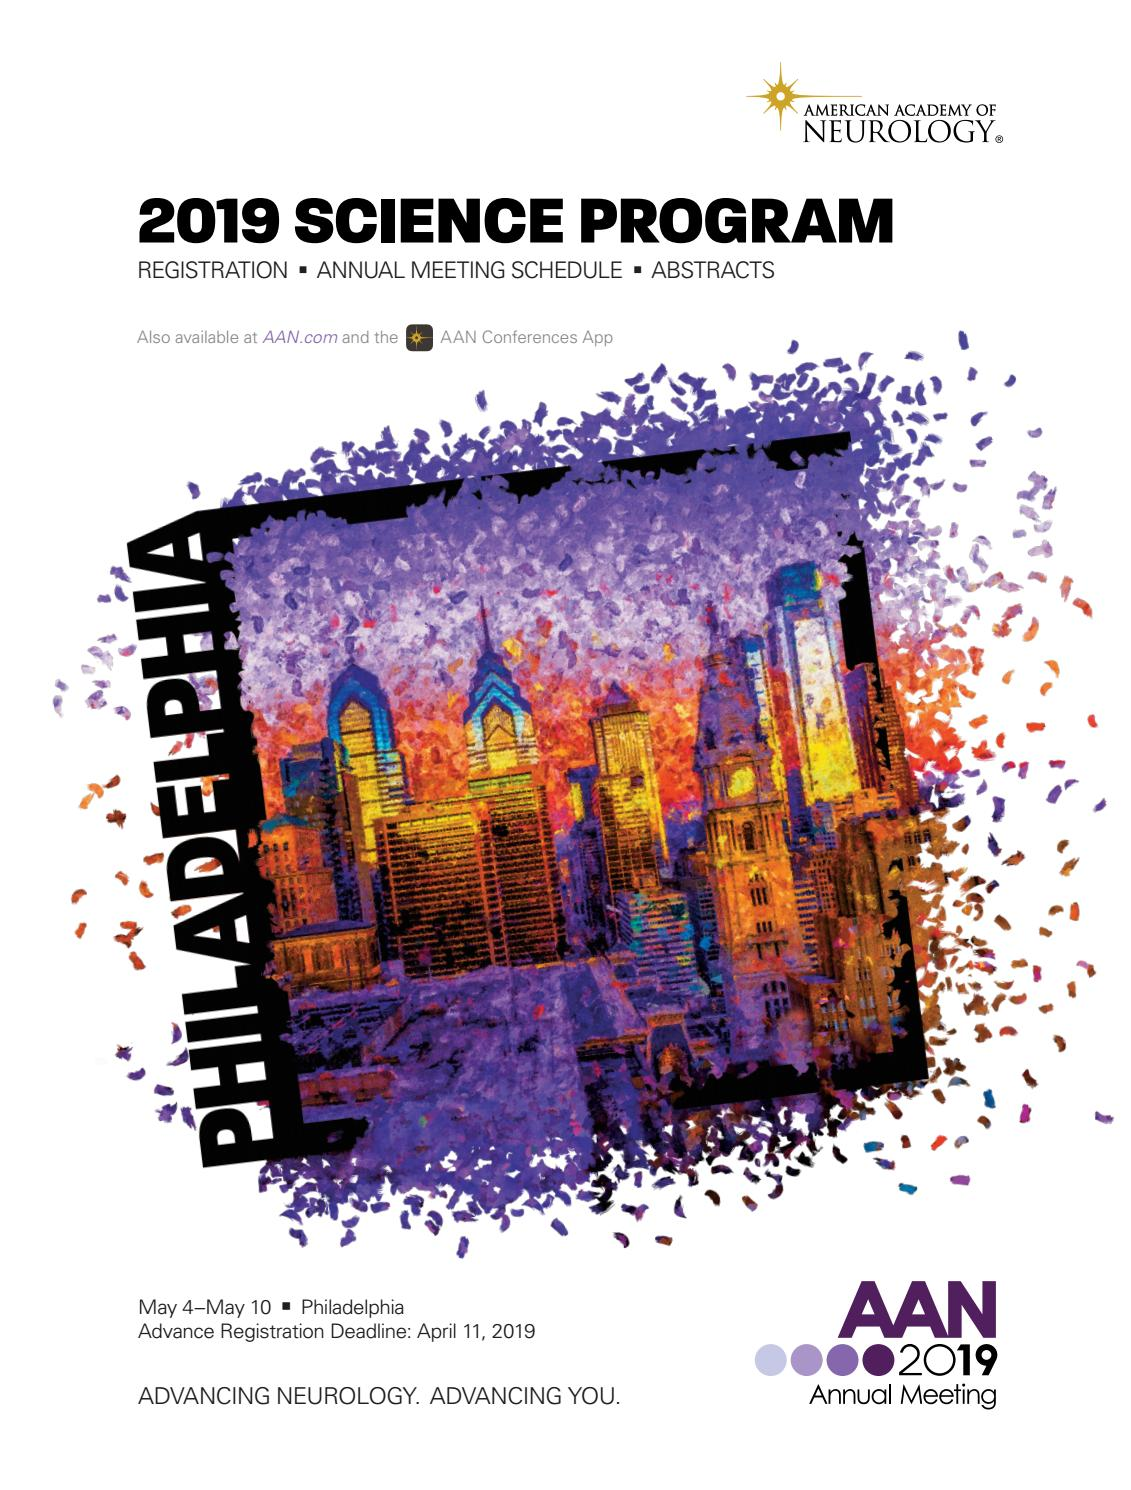 Minh Ngoc X 2019 Science Program By American Academy Of Neurology Issuu